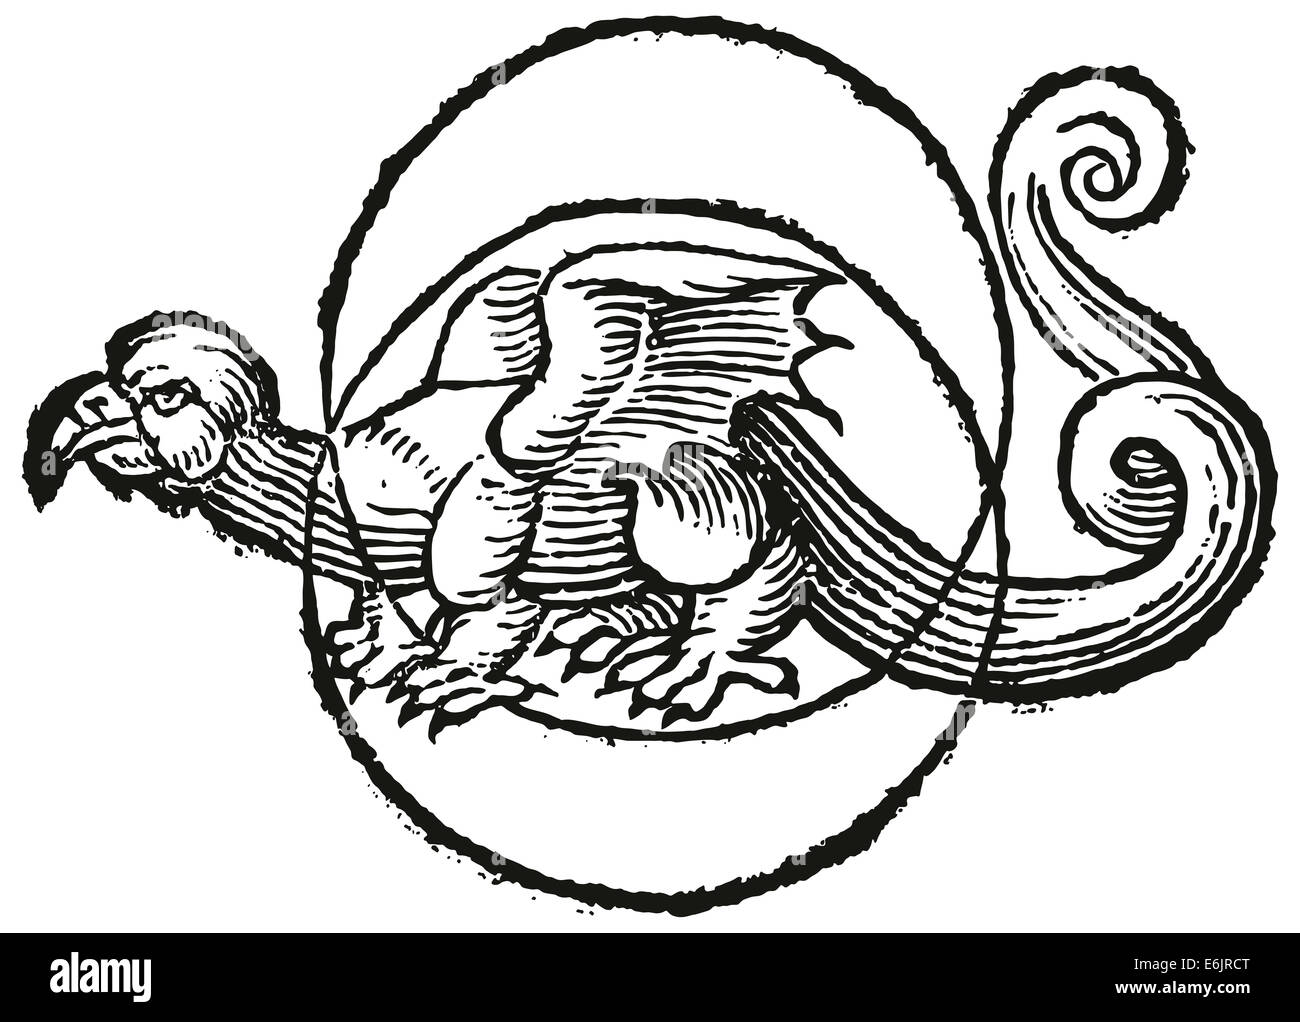 Moon Dragon in the center of two circles. Woodcut illustration. - Stock Image